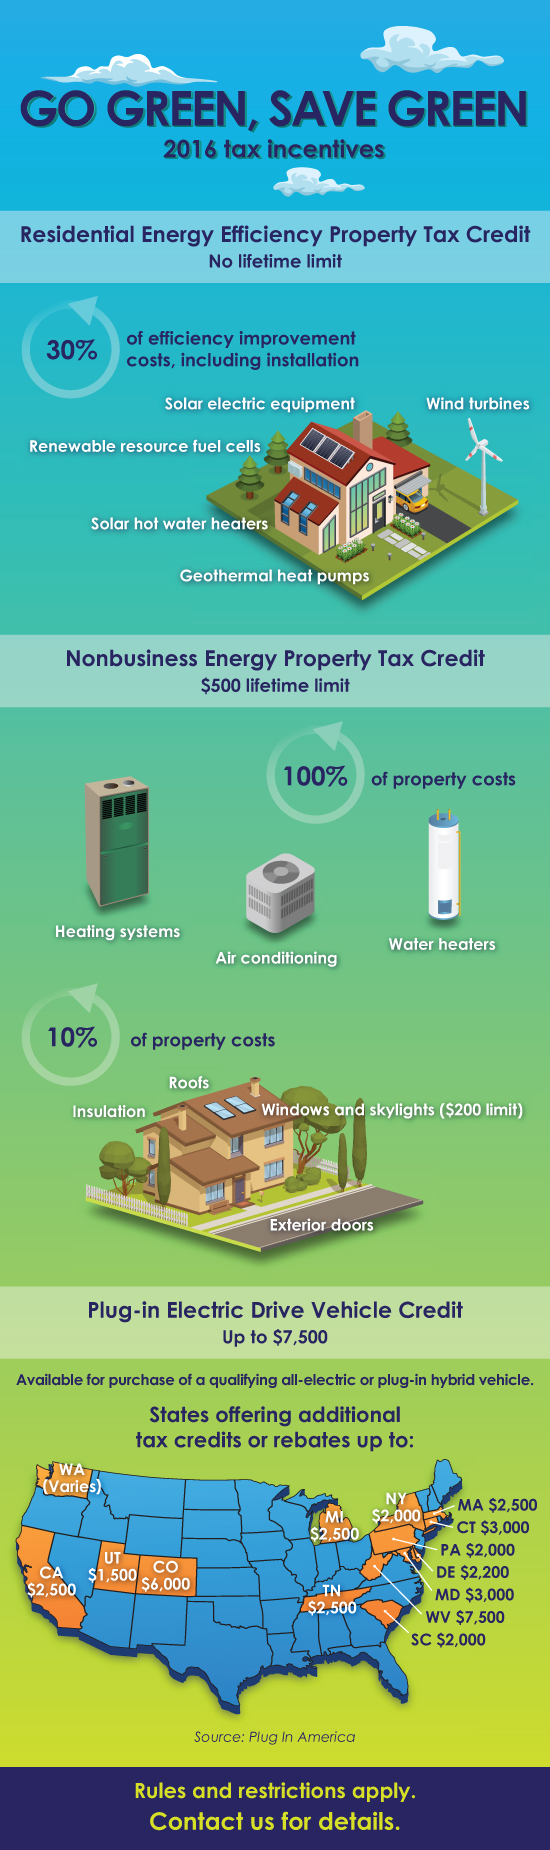 iff_energy-incentives_550x1850.jpg